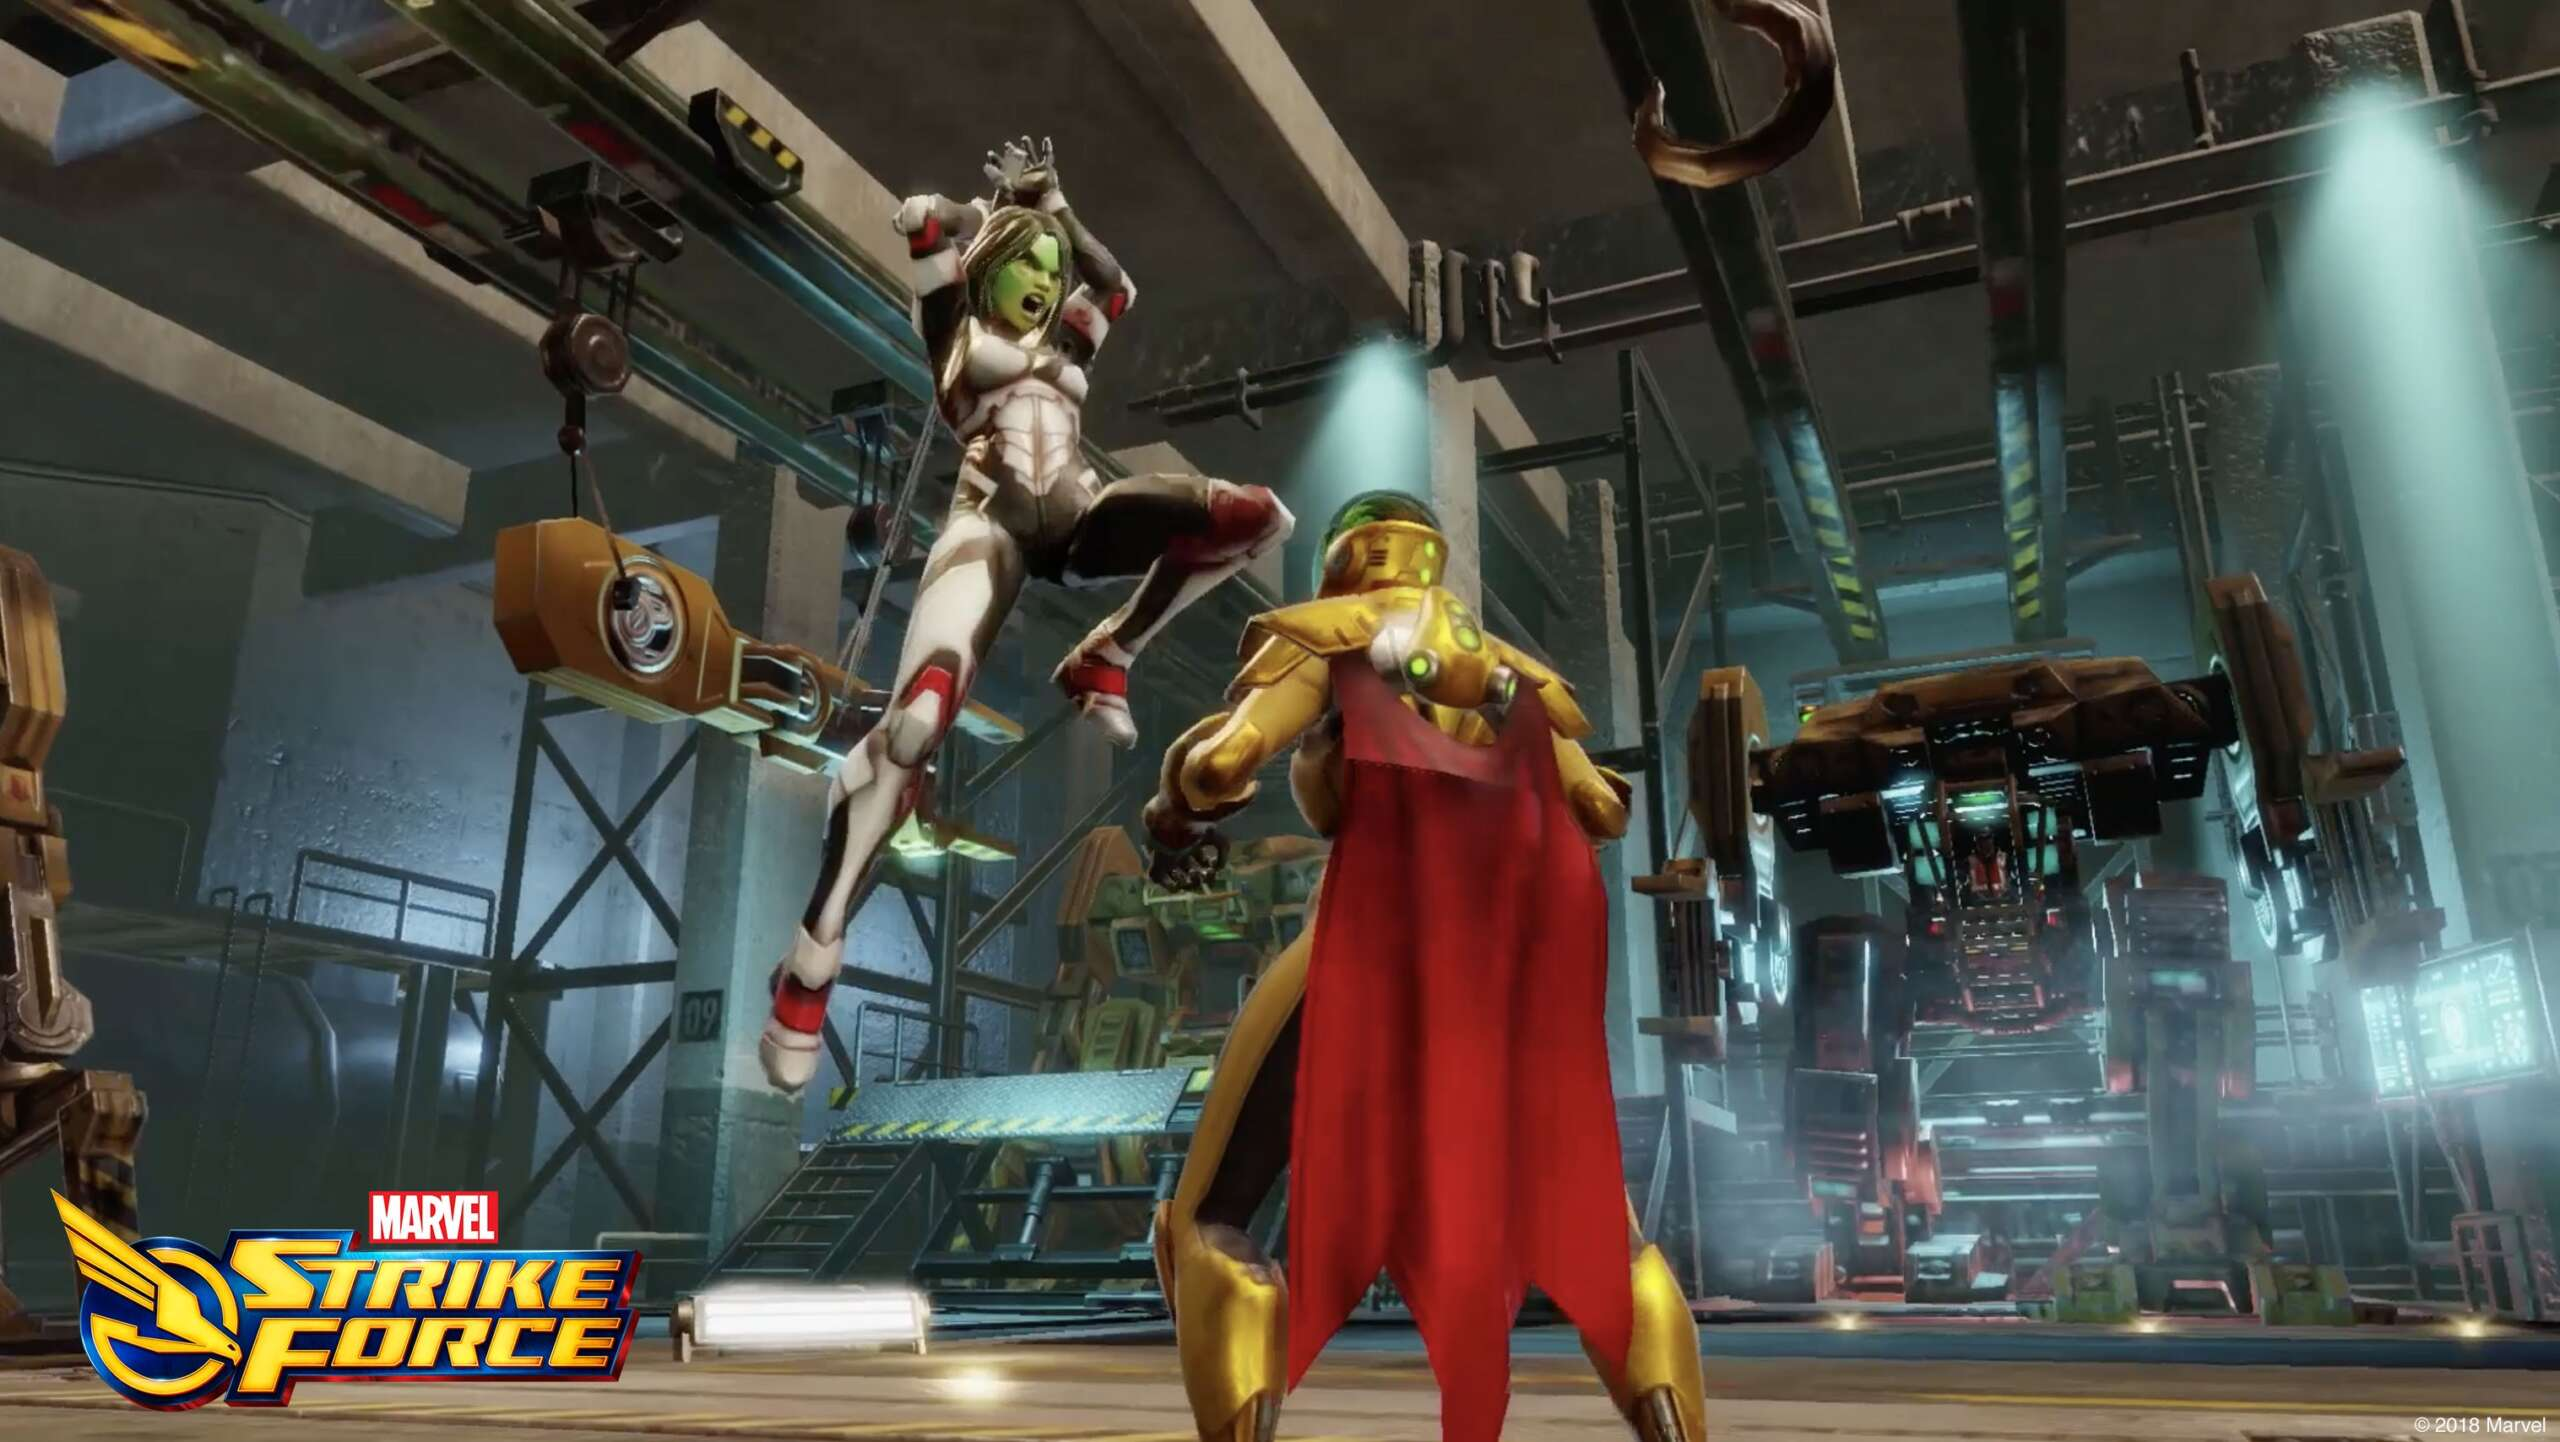 A Star Lord Event May Be On The Horizon In Marvel Strike Force, So Get Those Guardians Ready